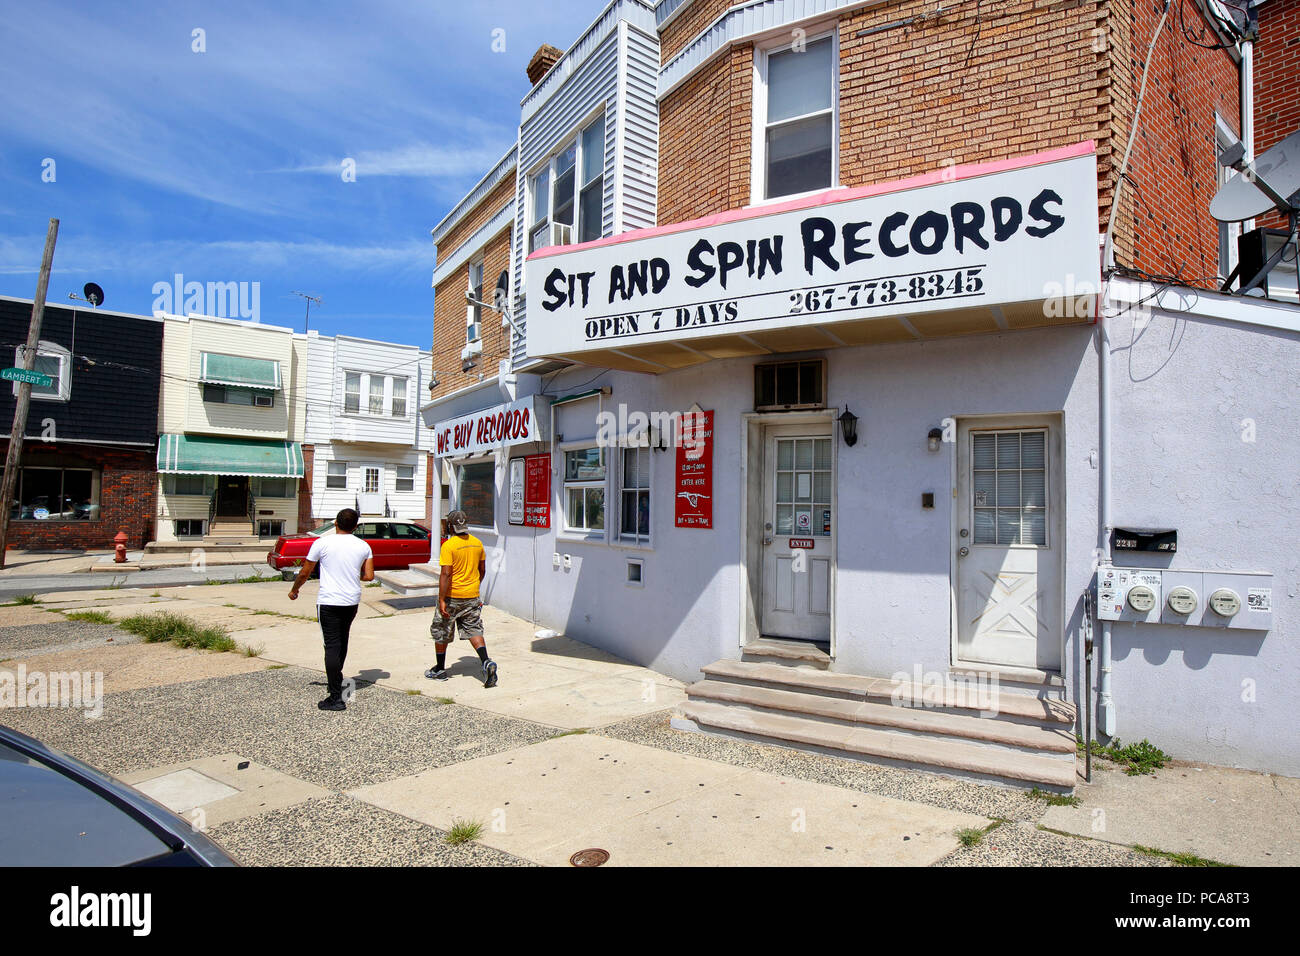 Sit and Spin Records, 2243 S Lambert St, Philadelphia, PA - Stock Image